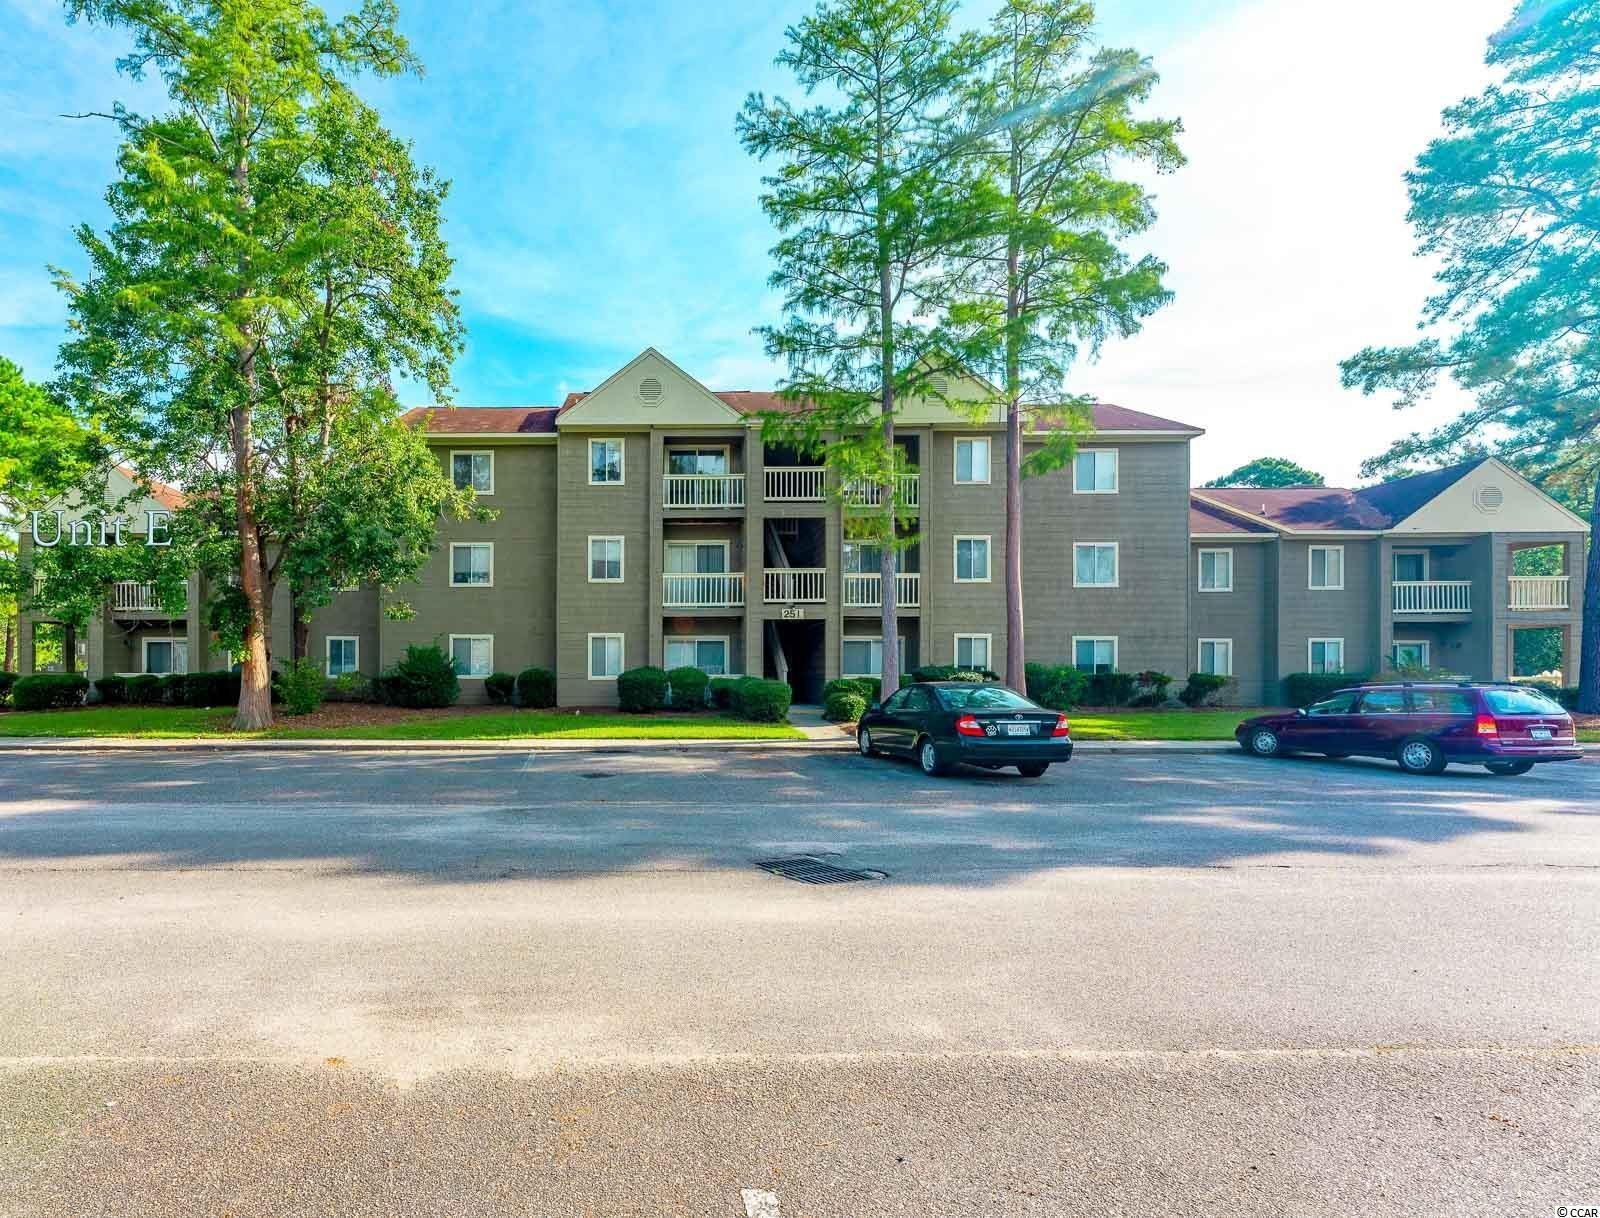 Looking for a fantastic investment opportunity or a home for the Coastal Carolina student. Then this 2 bed, 1 bath condo is just what you need! This is a second floor, end unit with its own private staircase. At 754 heated sq ft, the space feels much larger due to the open living/dining area, which leads into the fully equipped kitchen. Here you will also find the washer/dryer tucked away in their own closet. There are two porches with this unit, the largest leading directly off of the living area and the second, the dining area, letting in lots of natural light. Off of the hallway, you will find the family bathroom, followed by two spacious bedrooms. And lets not forget, this condo comes equipped with access to the community swimming pool and tennis courts! Just minutes from the college campus and centrally located to Downtown Conway and Myrtle Beach, you are never too far from anything. Schedule a showing today!